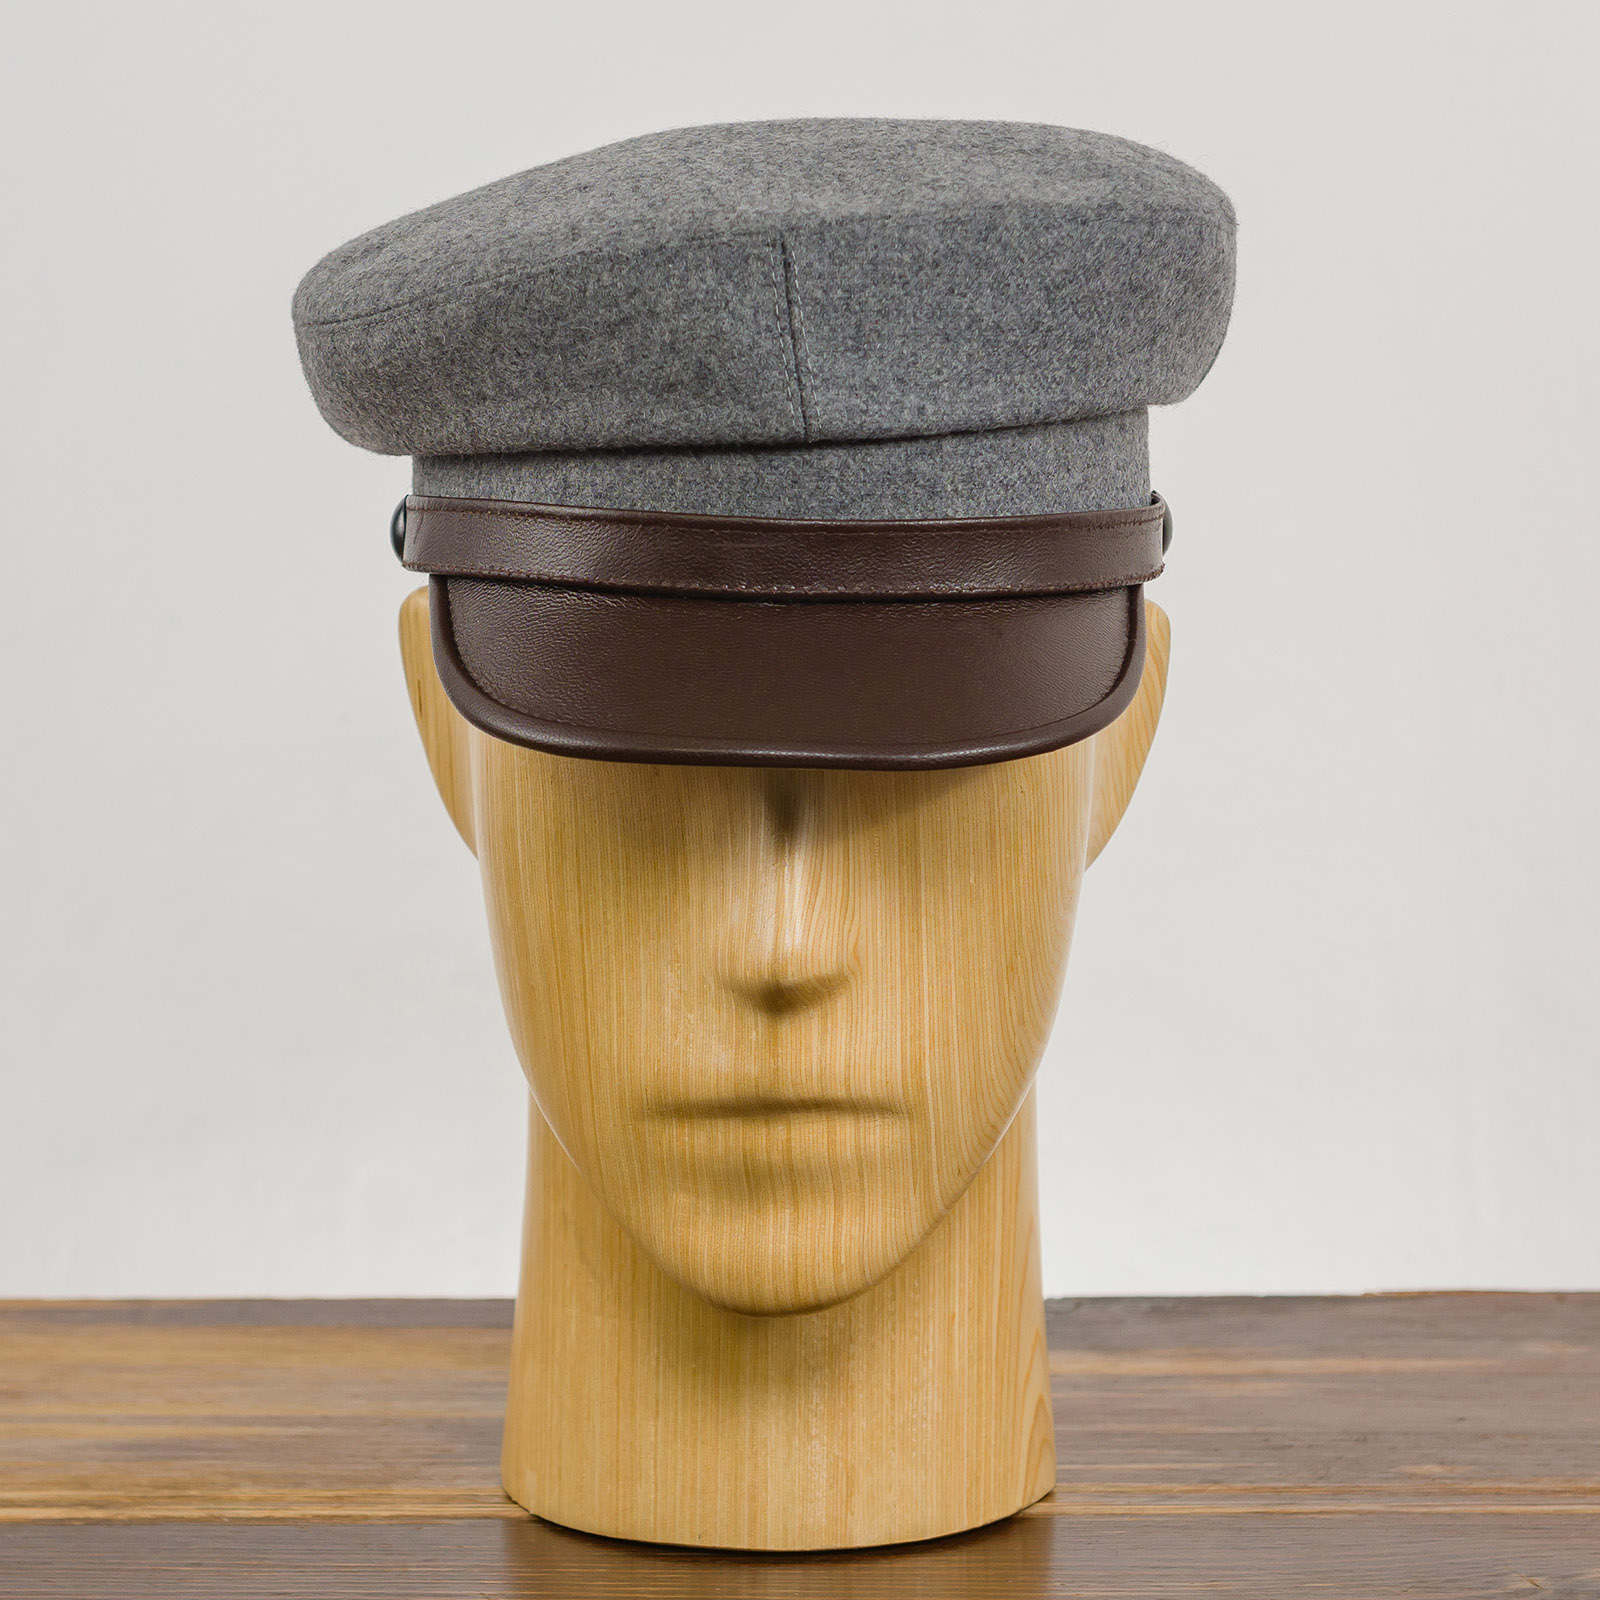 Wool crown leather visor traditional Polish peaked cap greek fisherman breton captains sailor nautical skipper fiddler